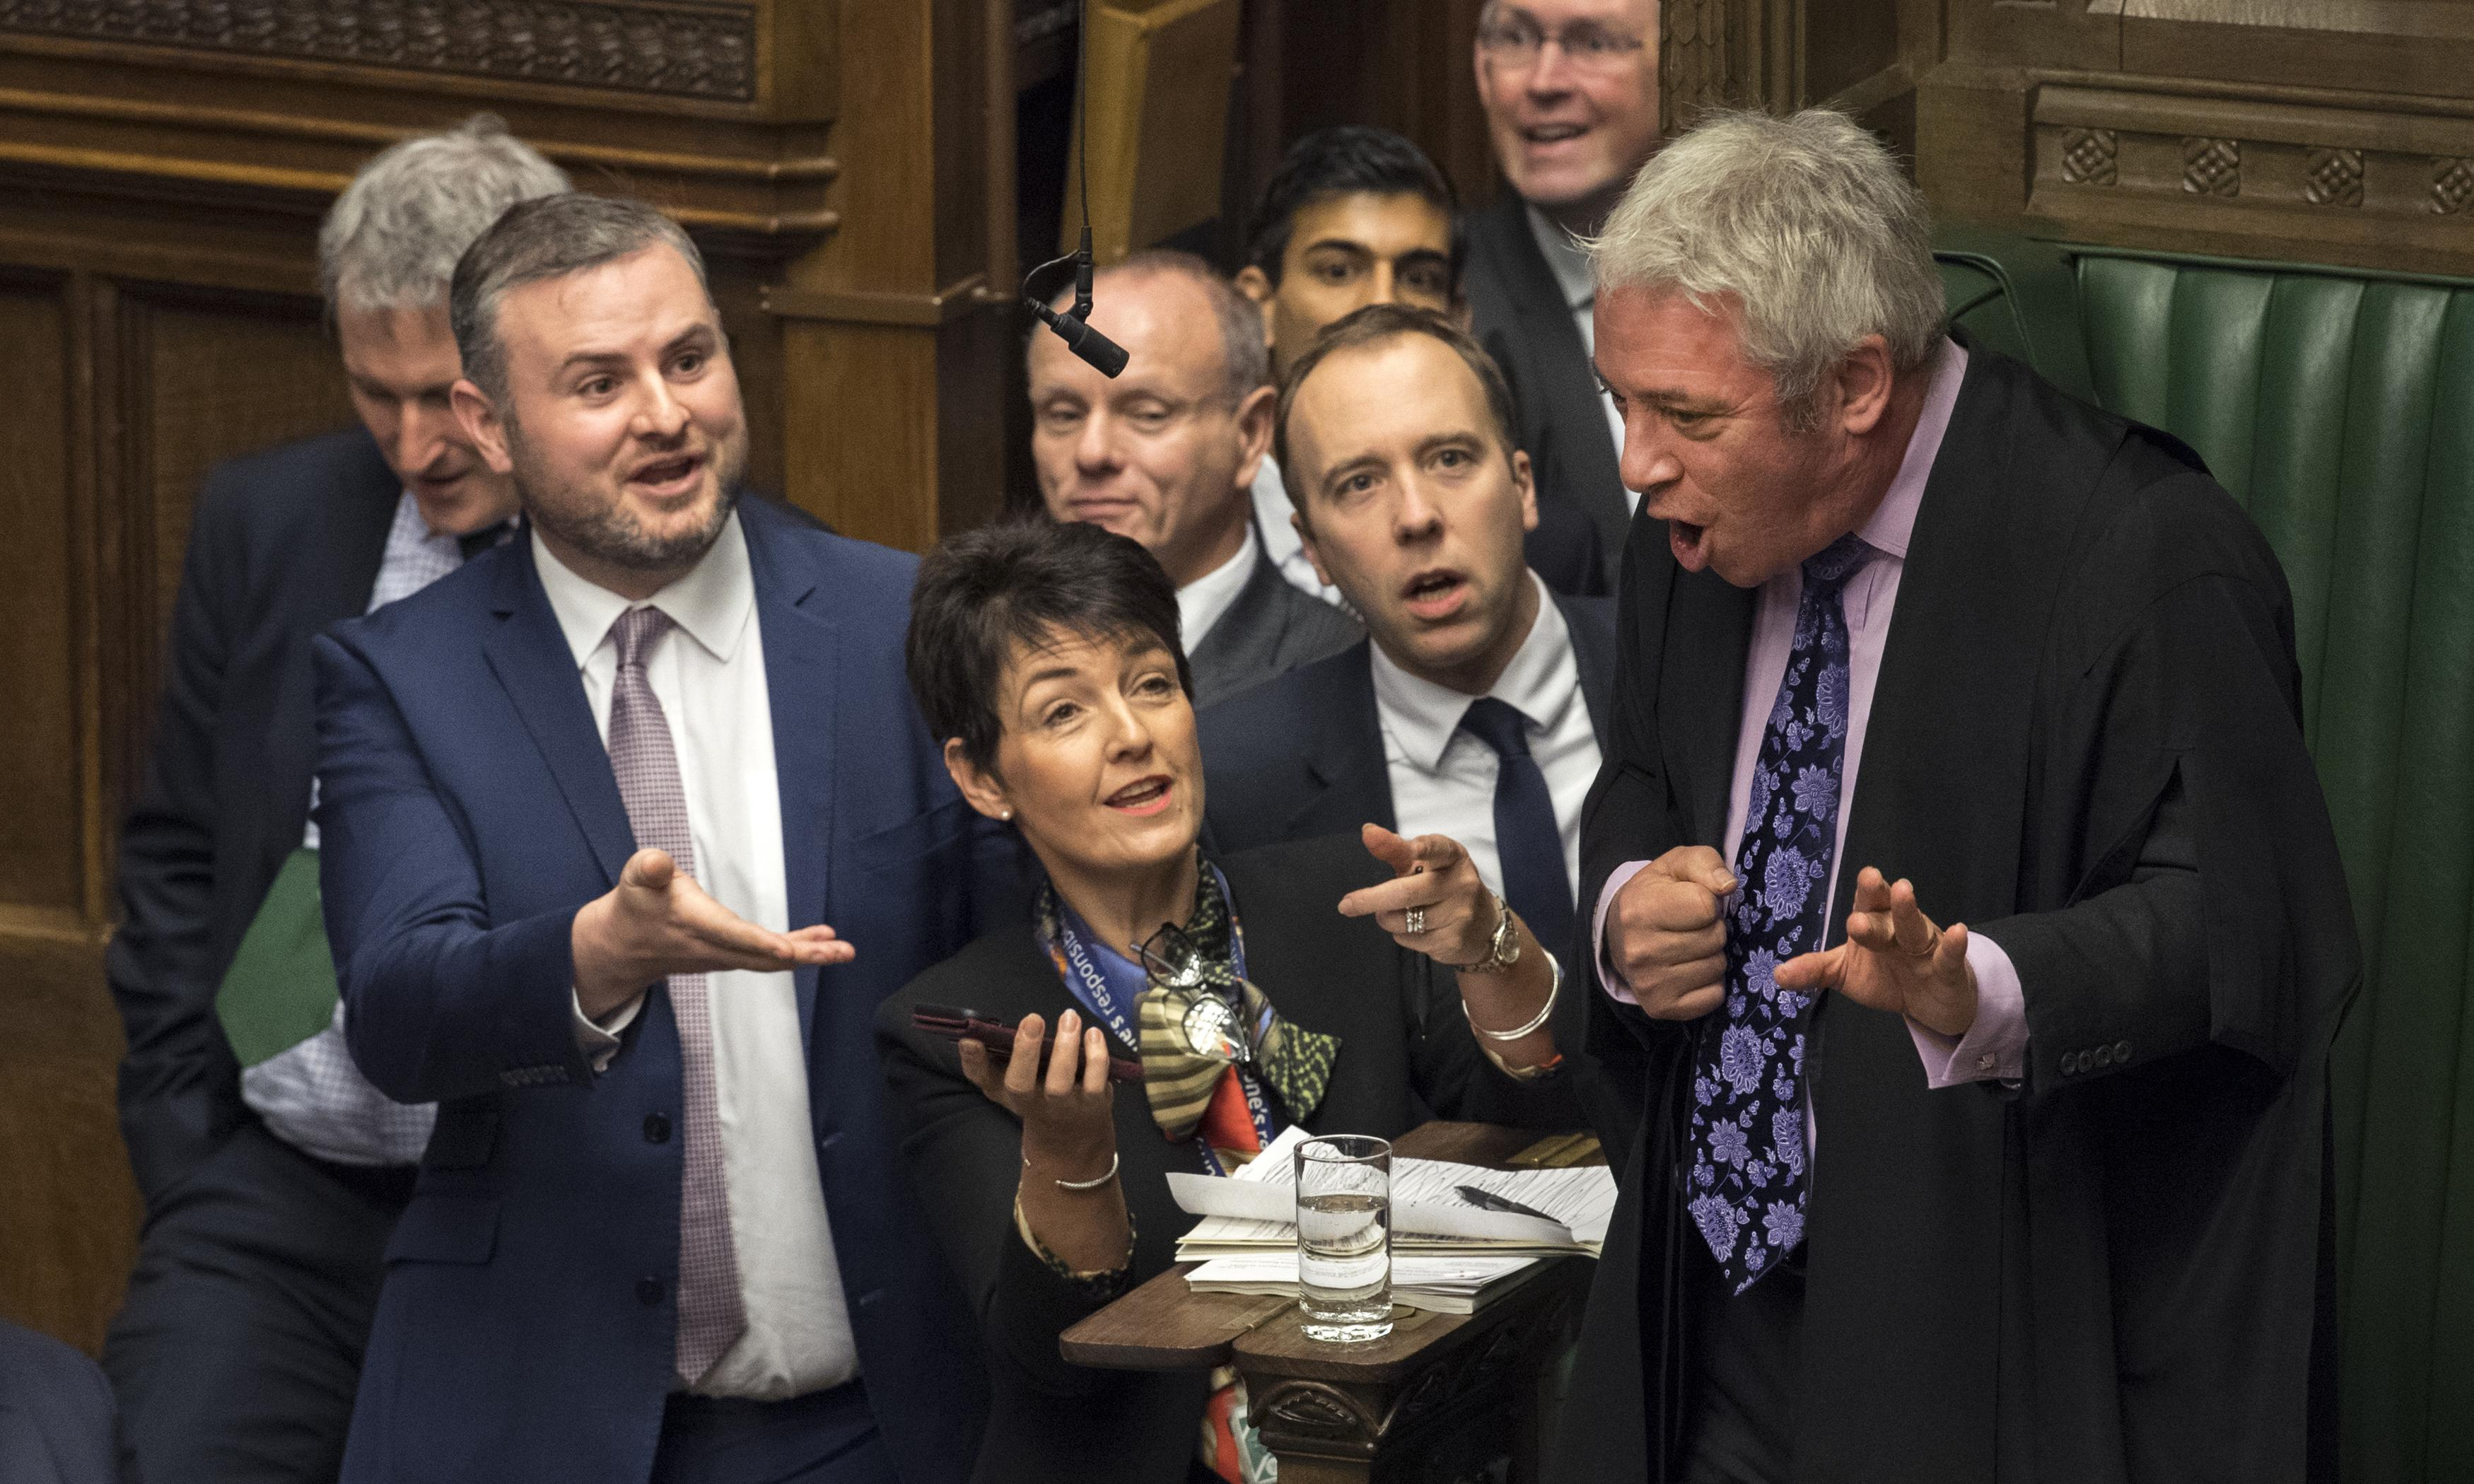 How admirable that MPs want to amend Brexit. It won't work